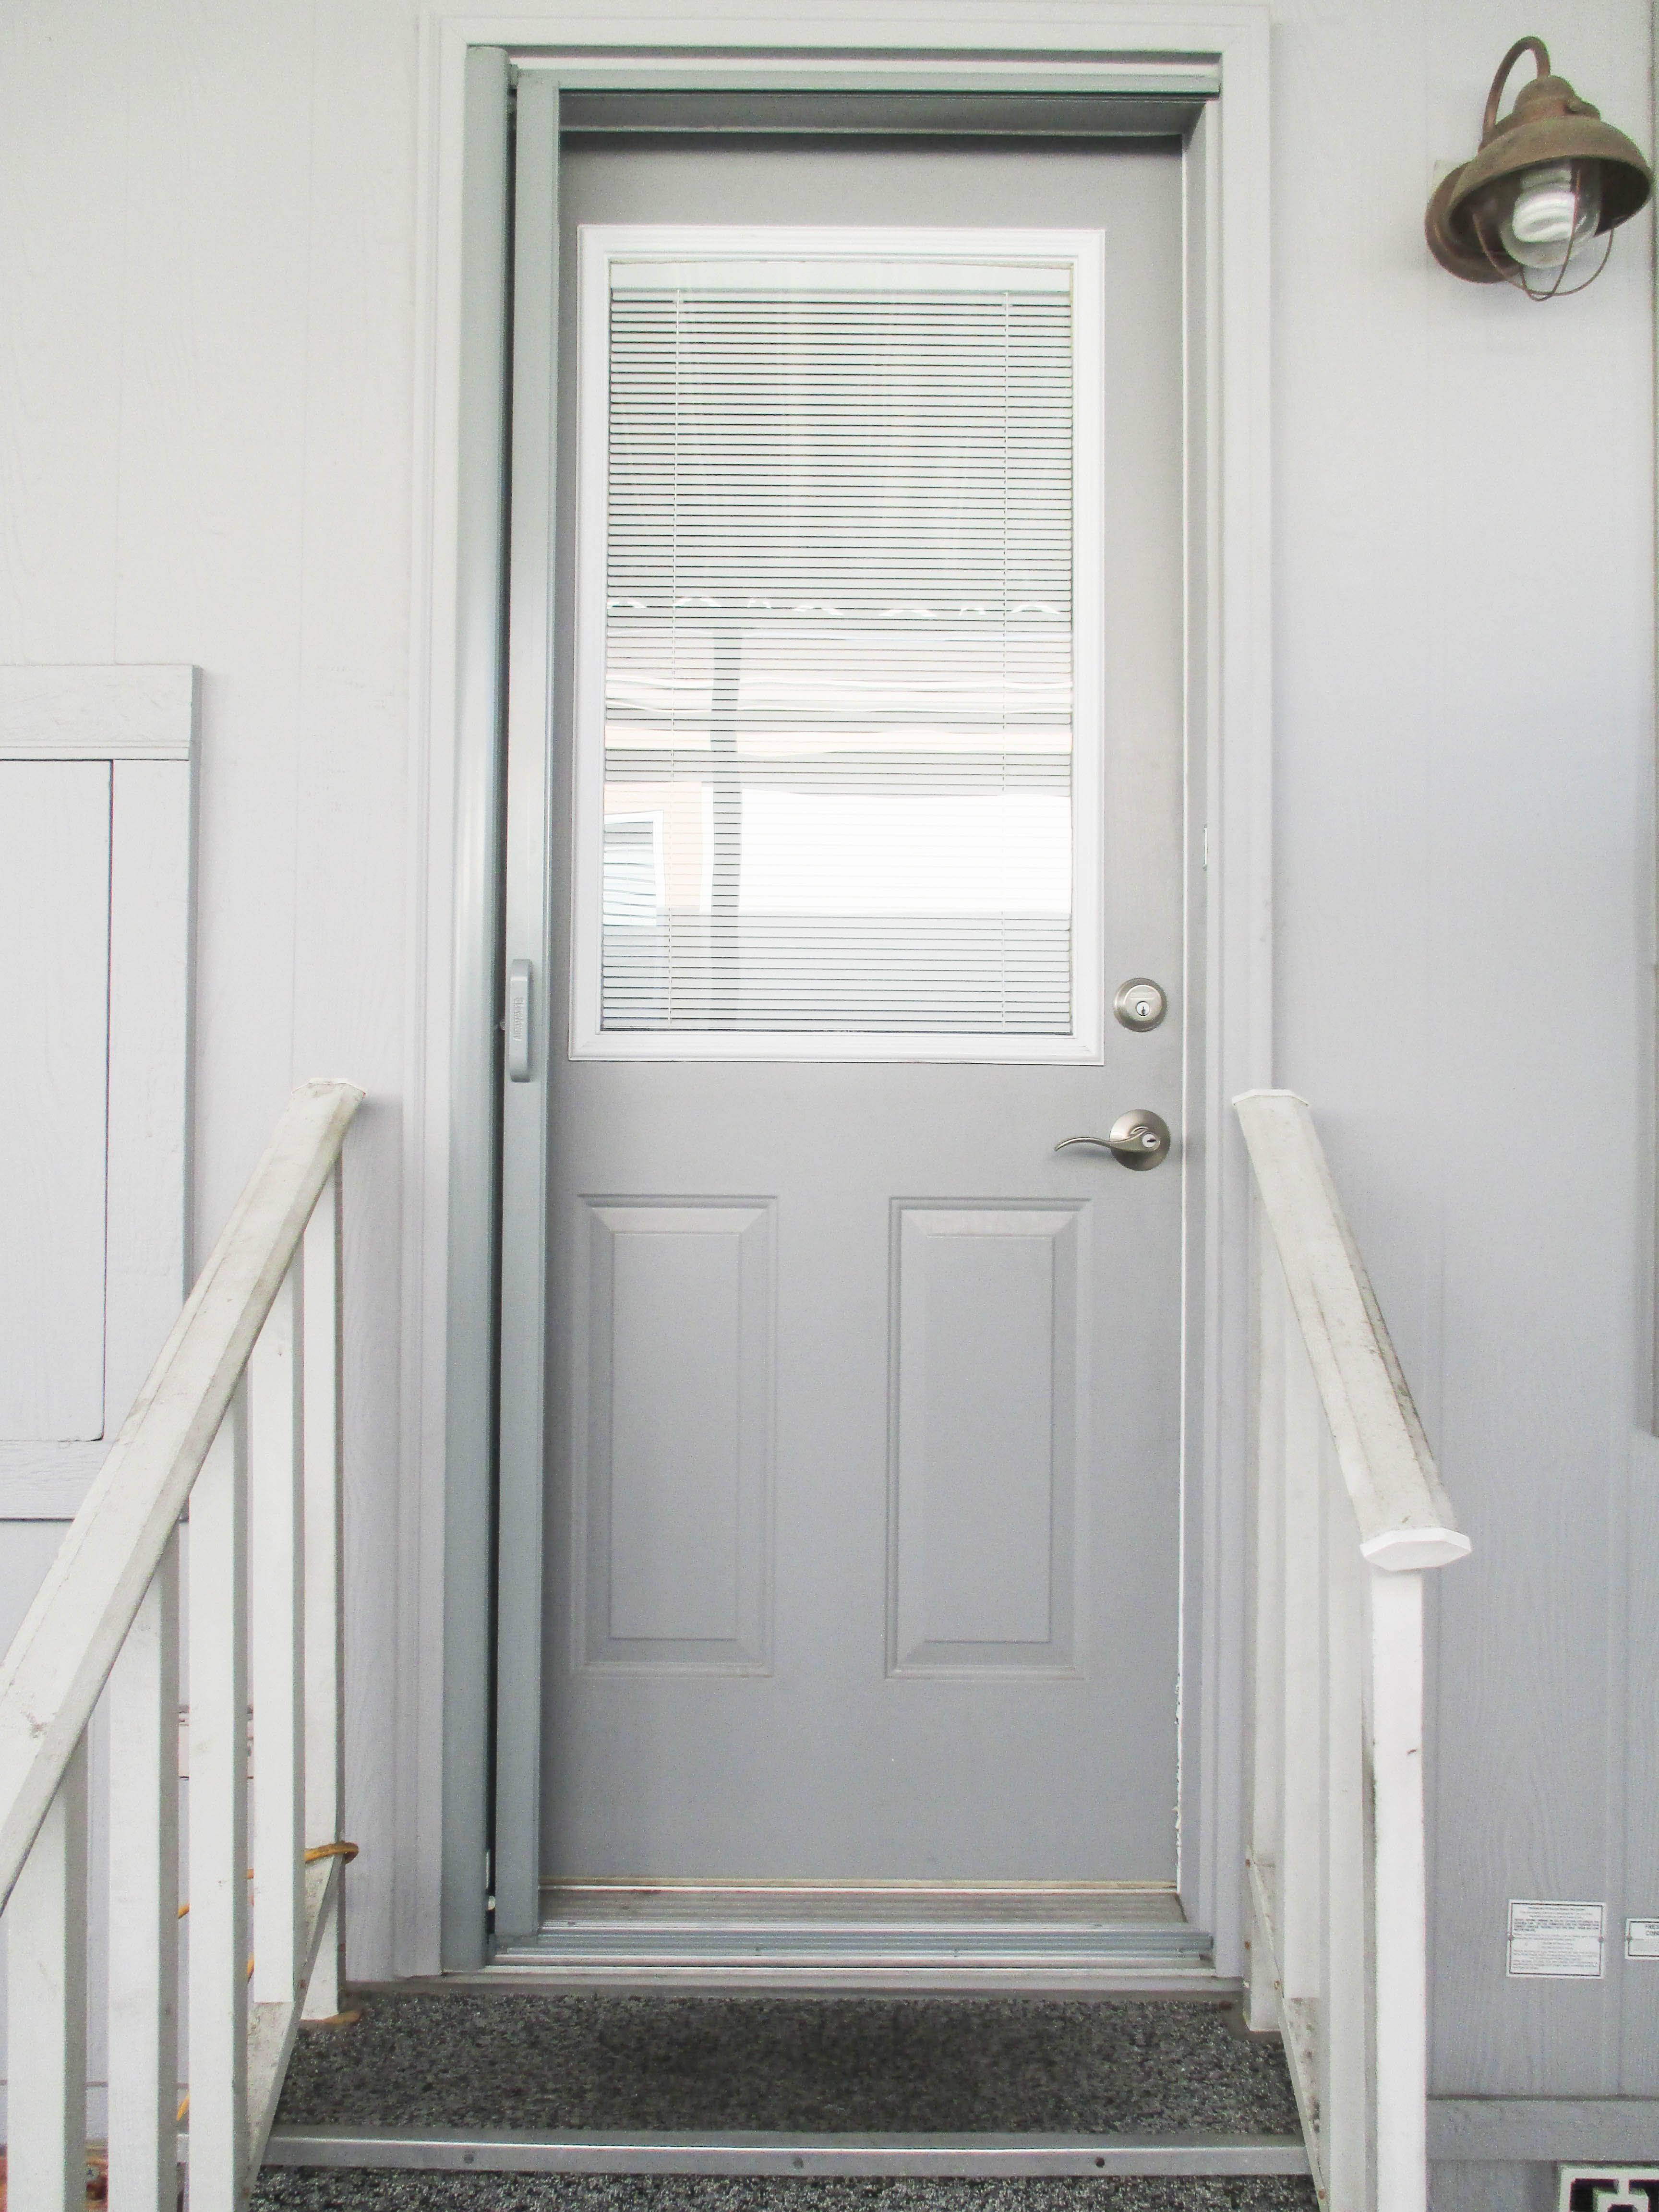 If you're in the market for a Retractable Screen Door